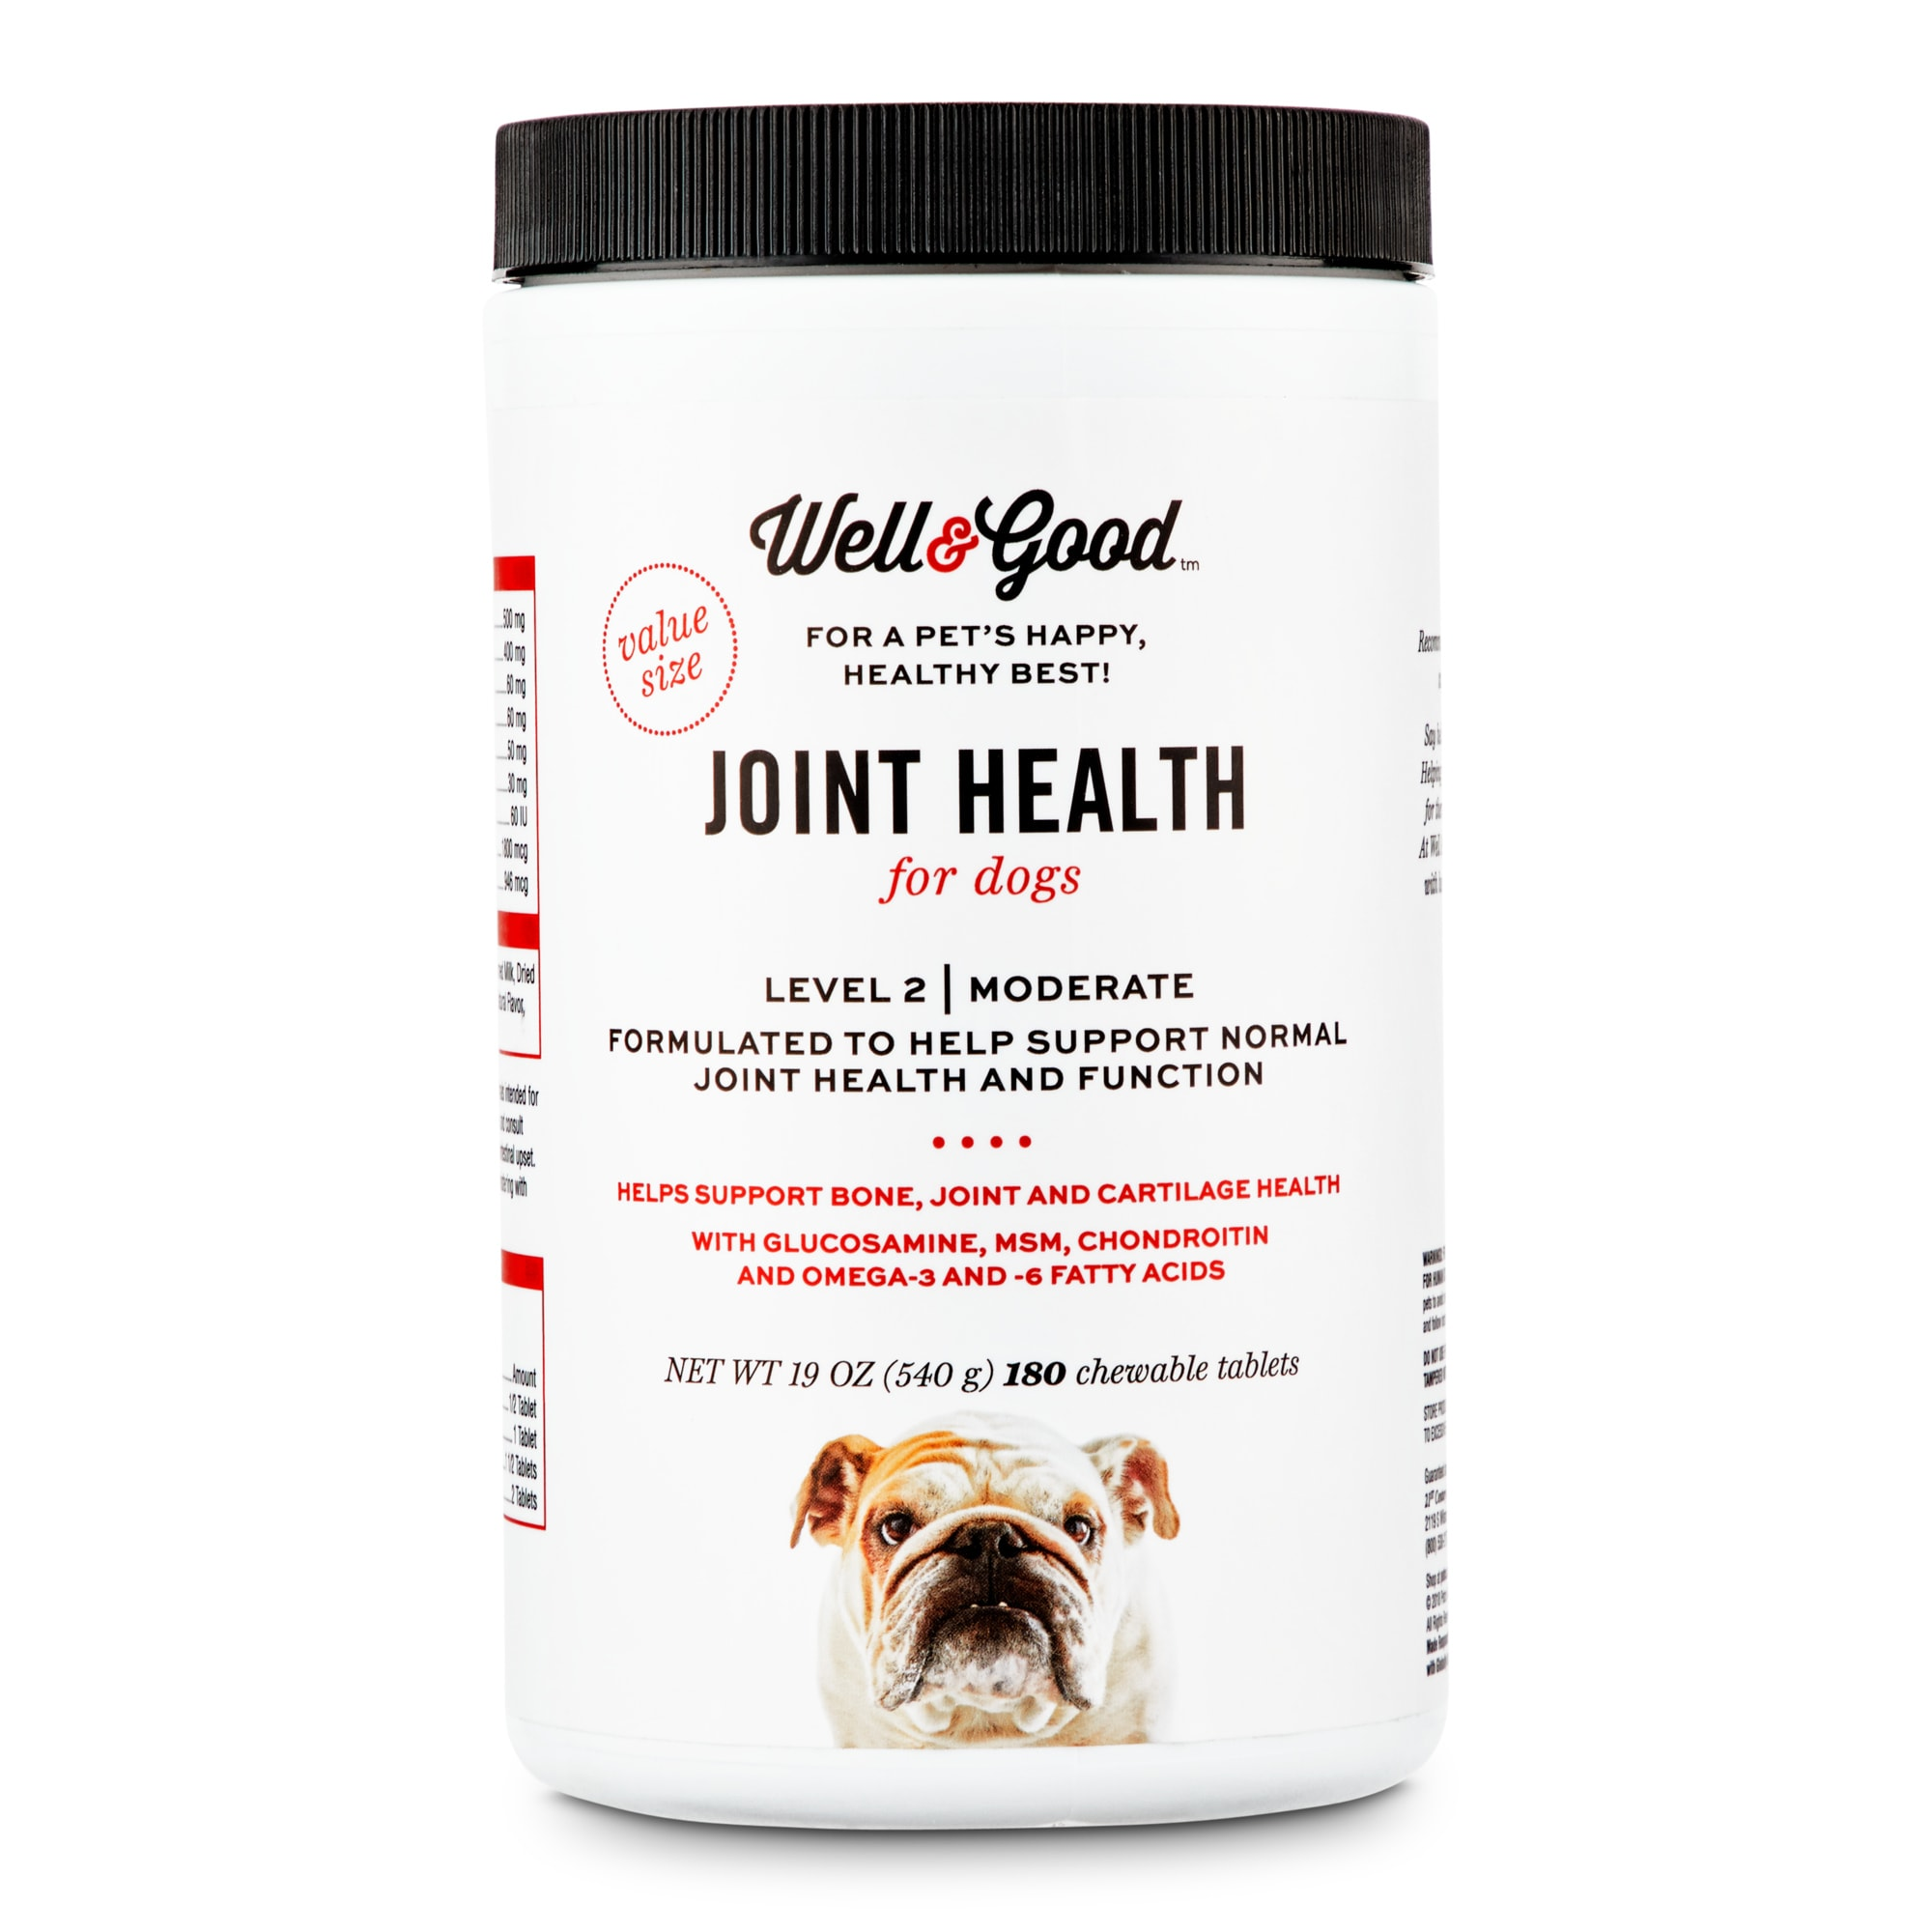 Well & Good Adult Level 2 Dog Joint Health Chewable Tablets, Count of 180, 3.5 IN